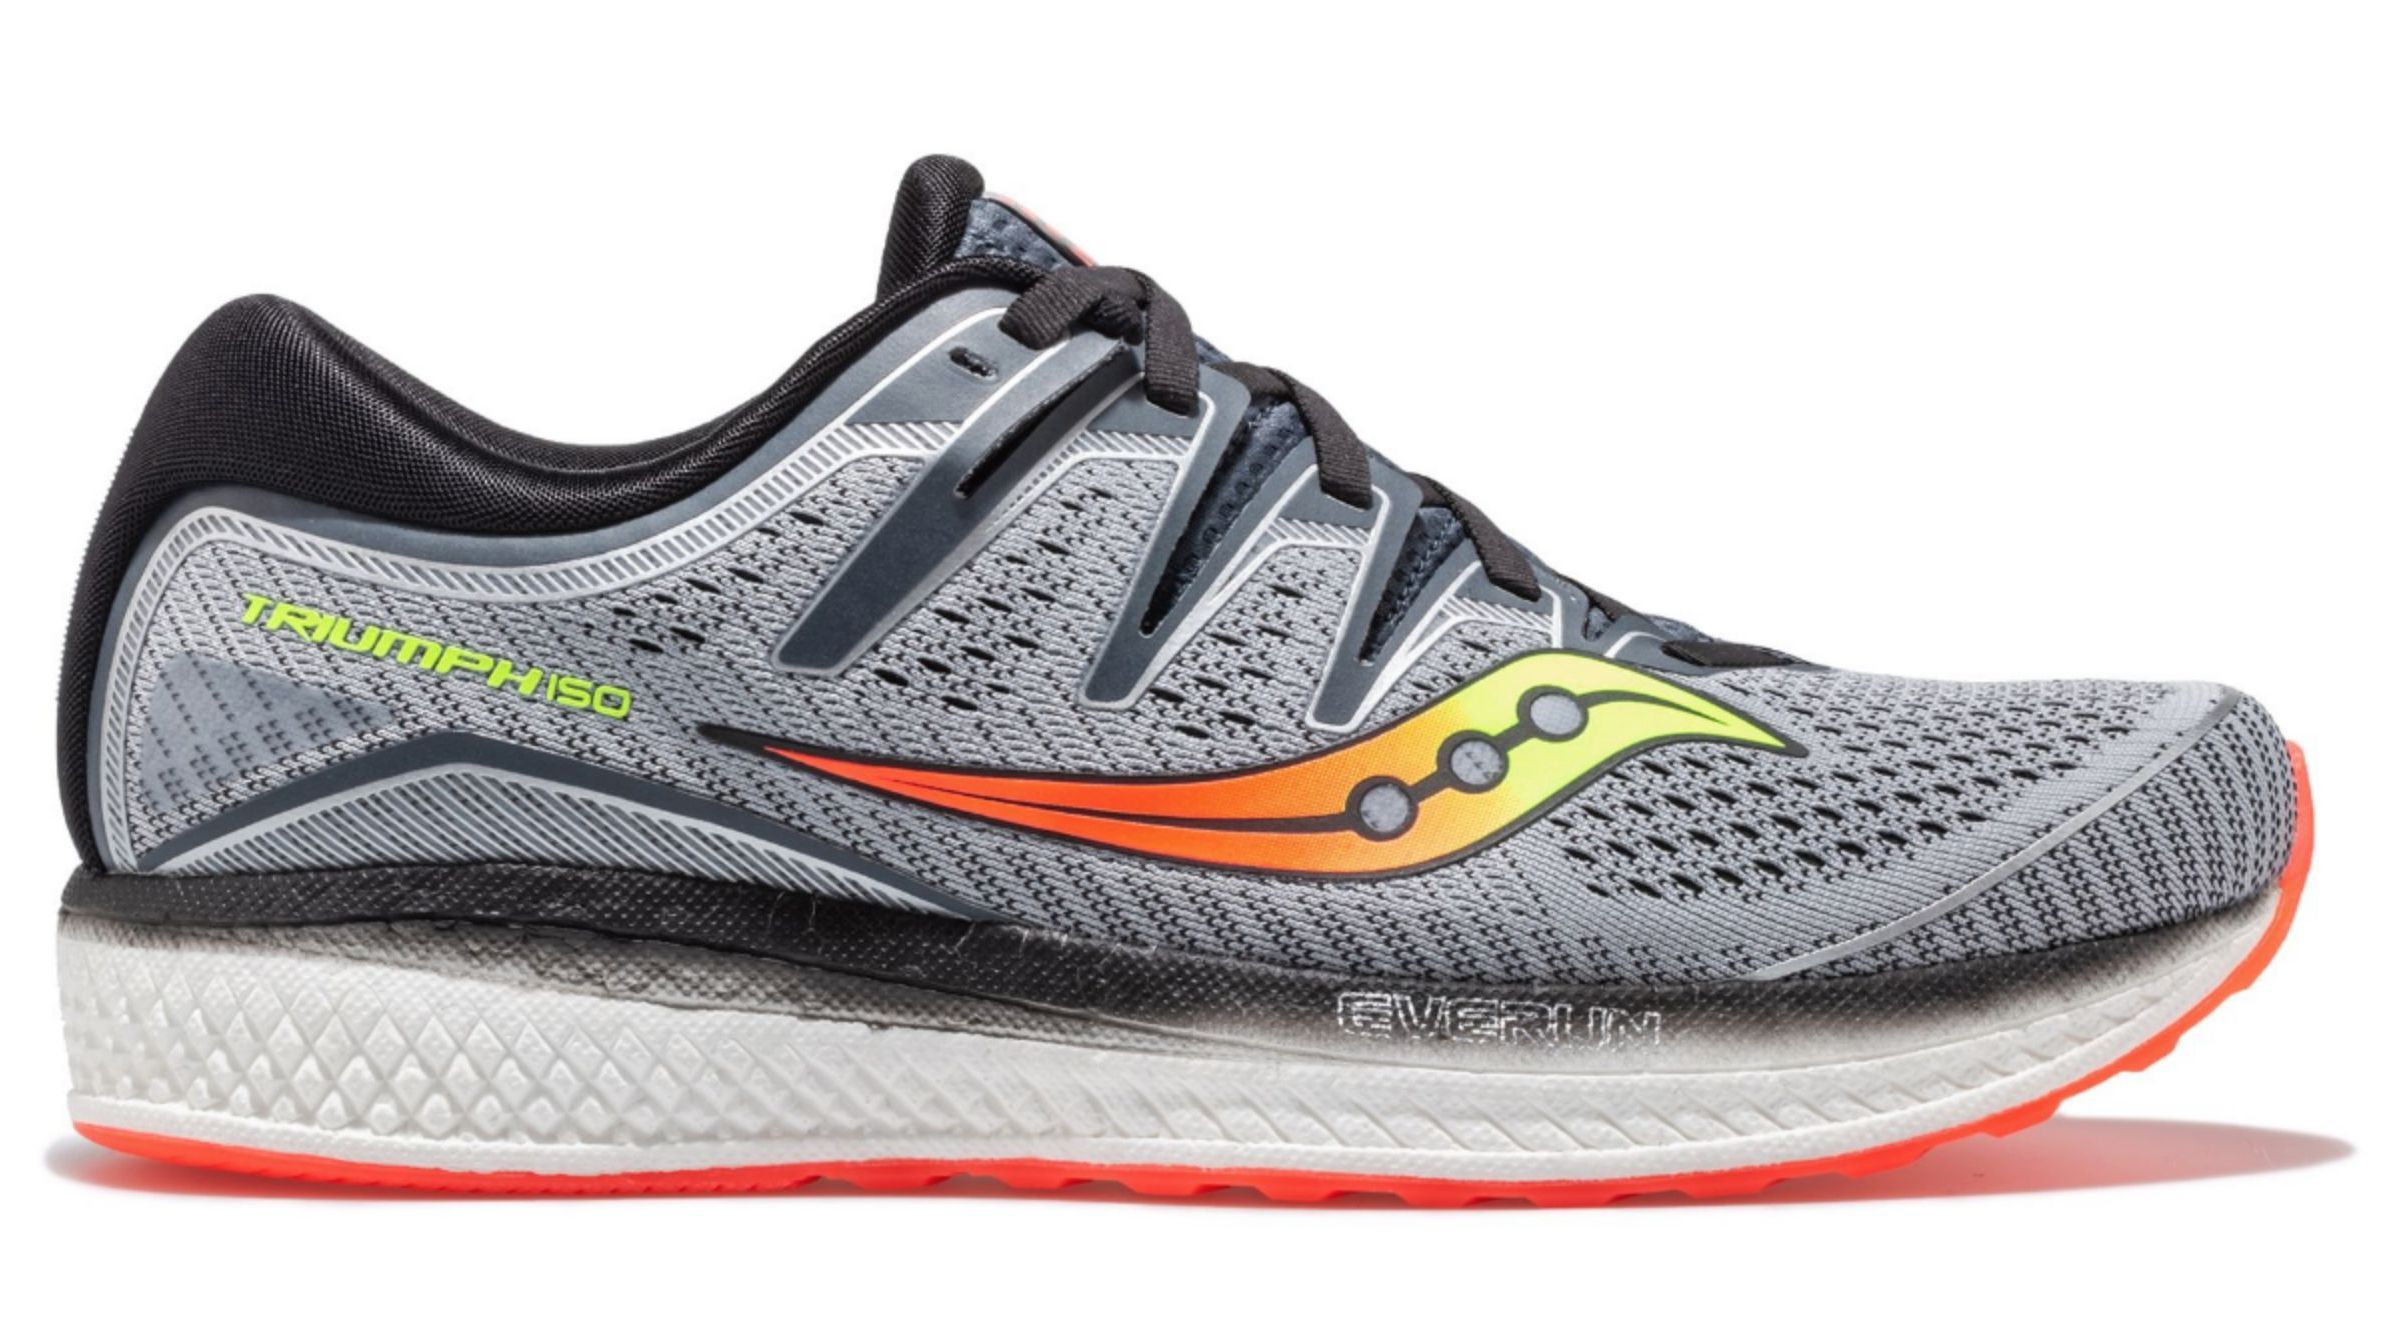 0427f5da Best Saucony Running Shoes | Saucony Shoe Reviews 2019